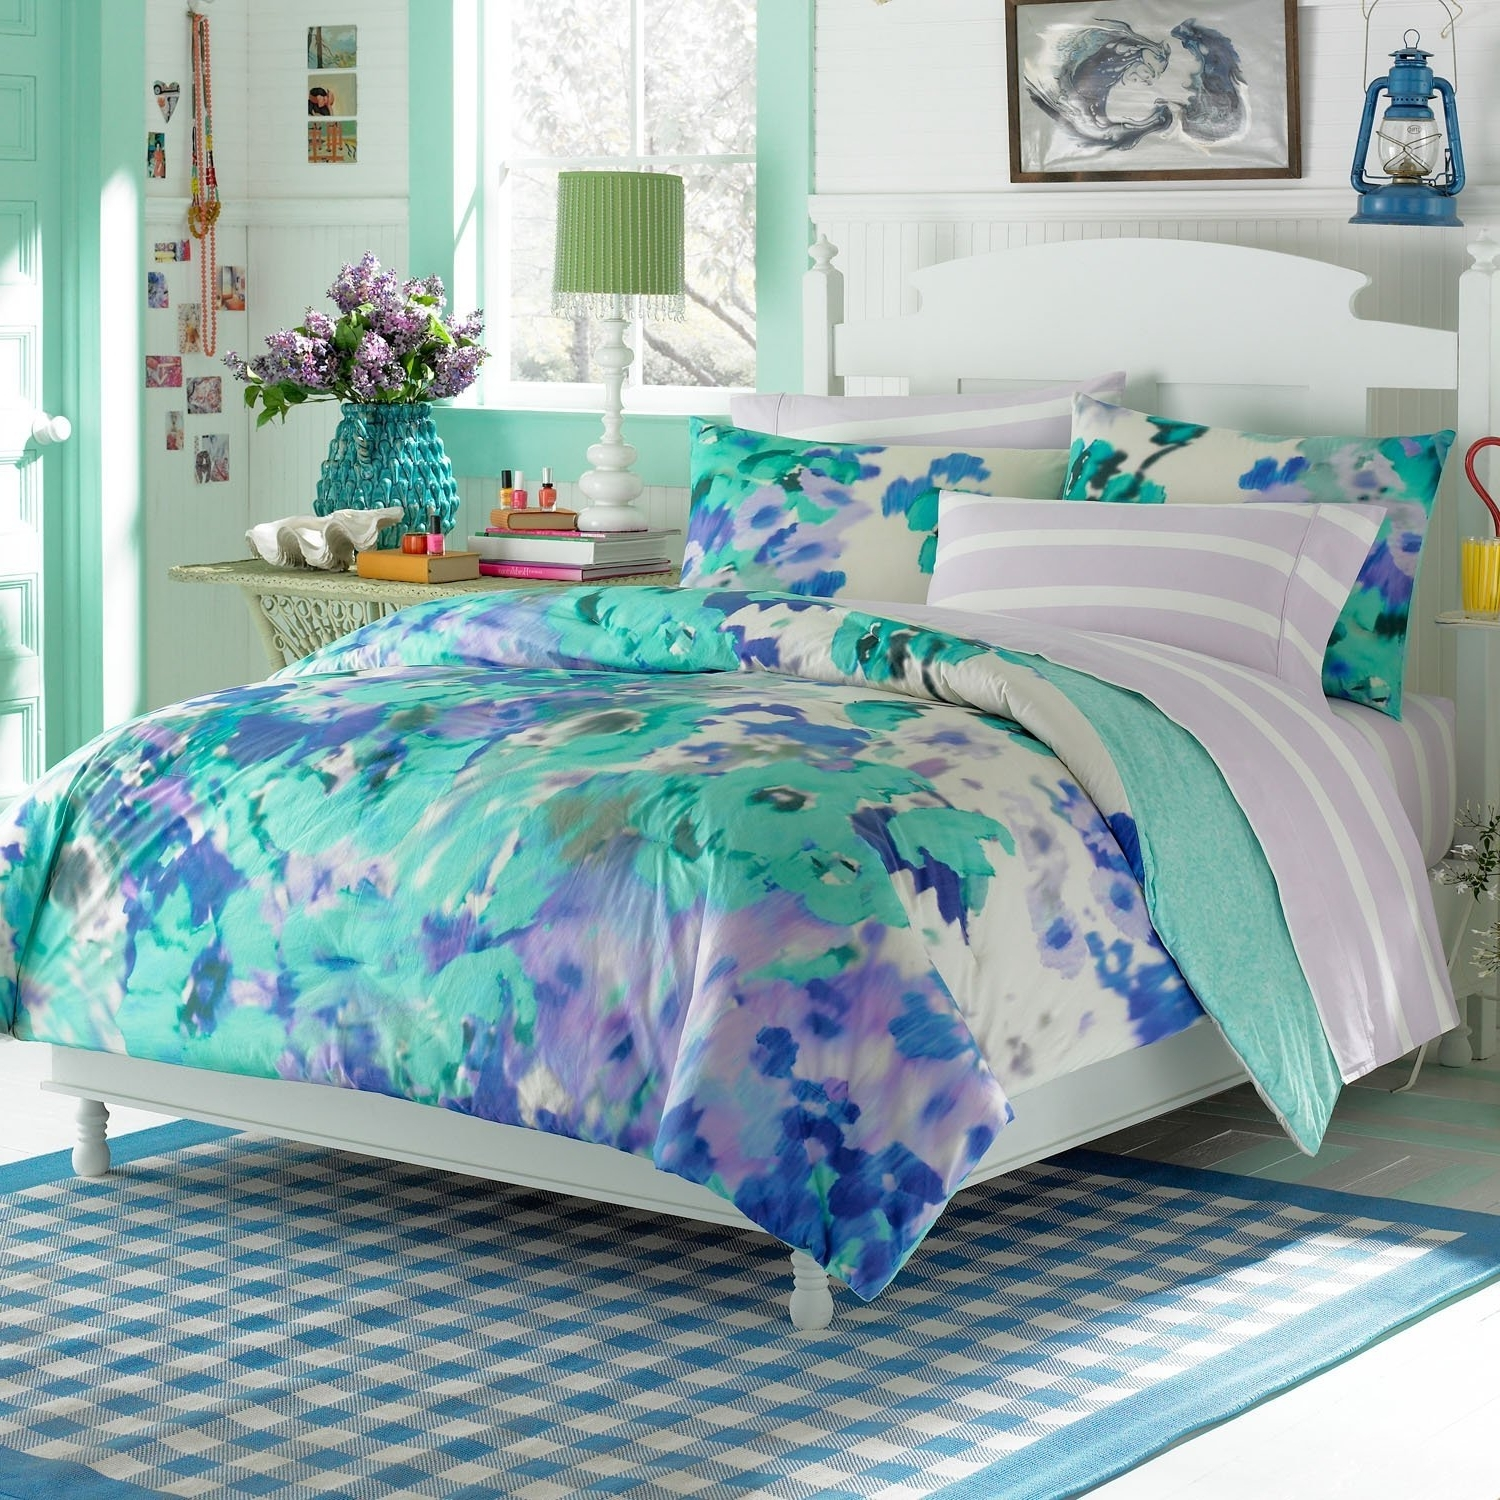 Marvelous Ideas Of Teenage Bedroom Comforters New Home Furniture throughout Aqua Teens Room - Design Decor